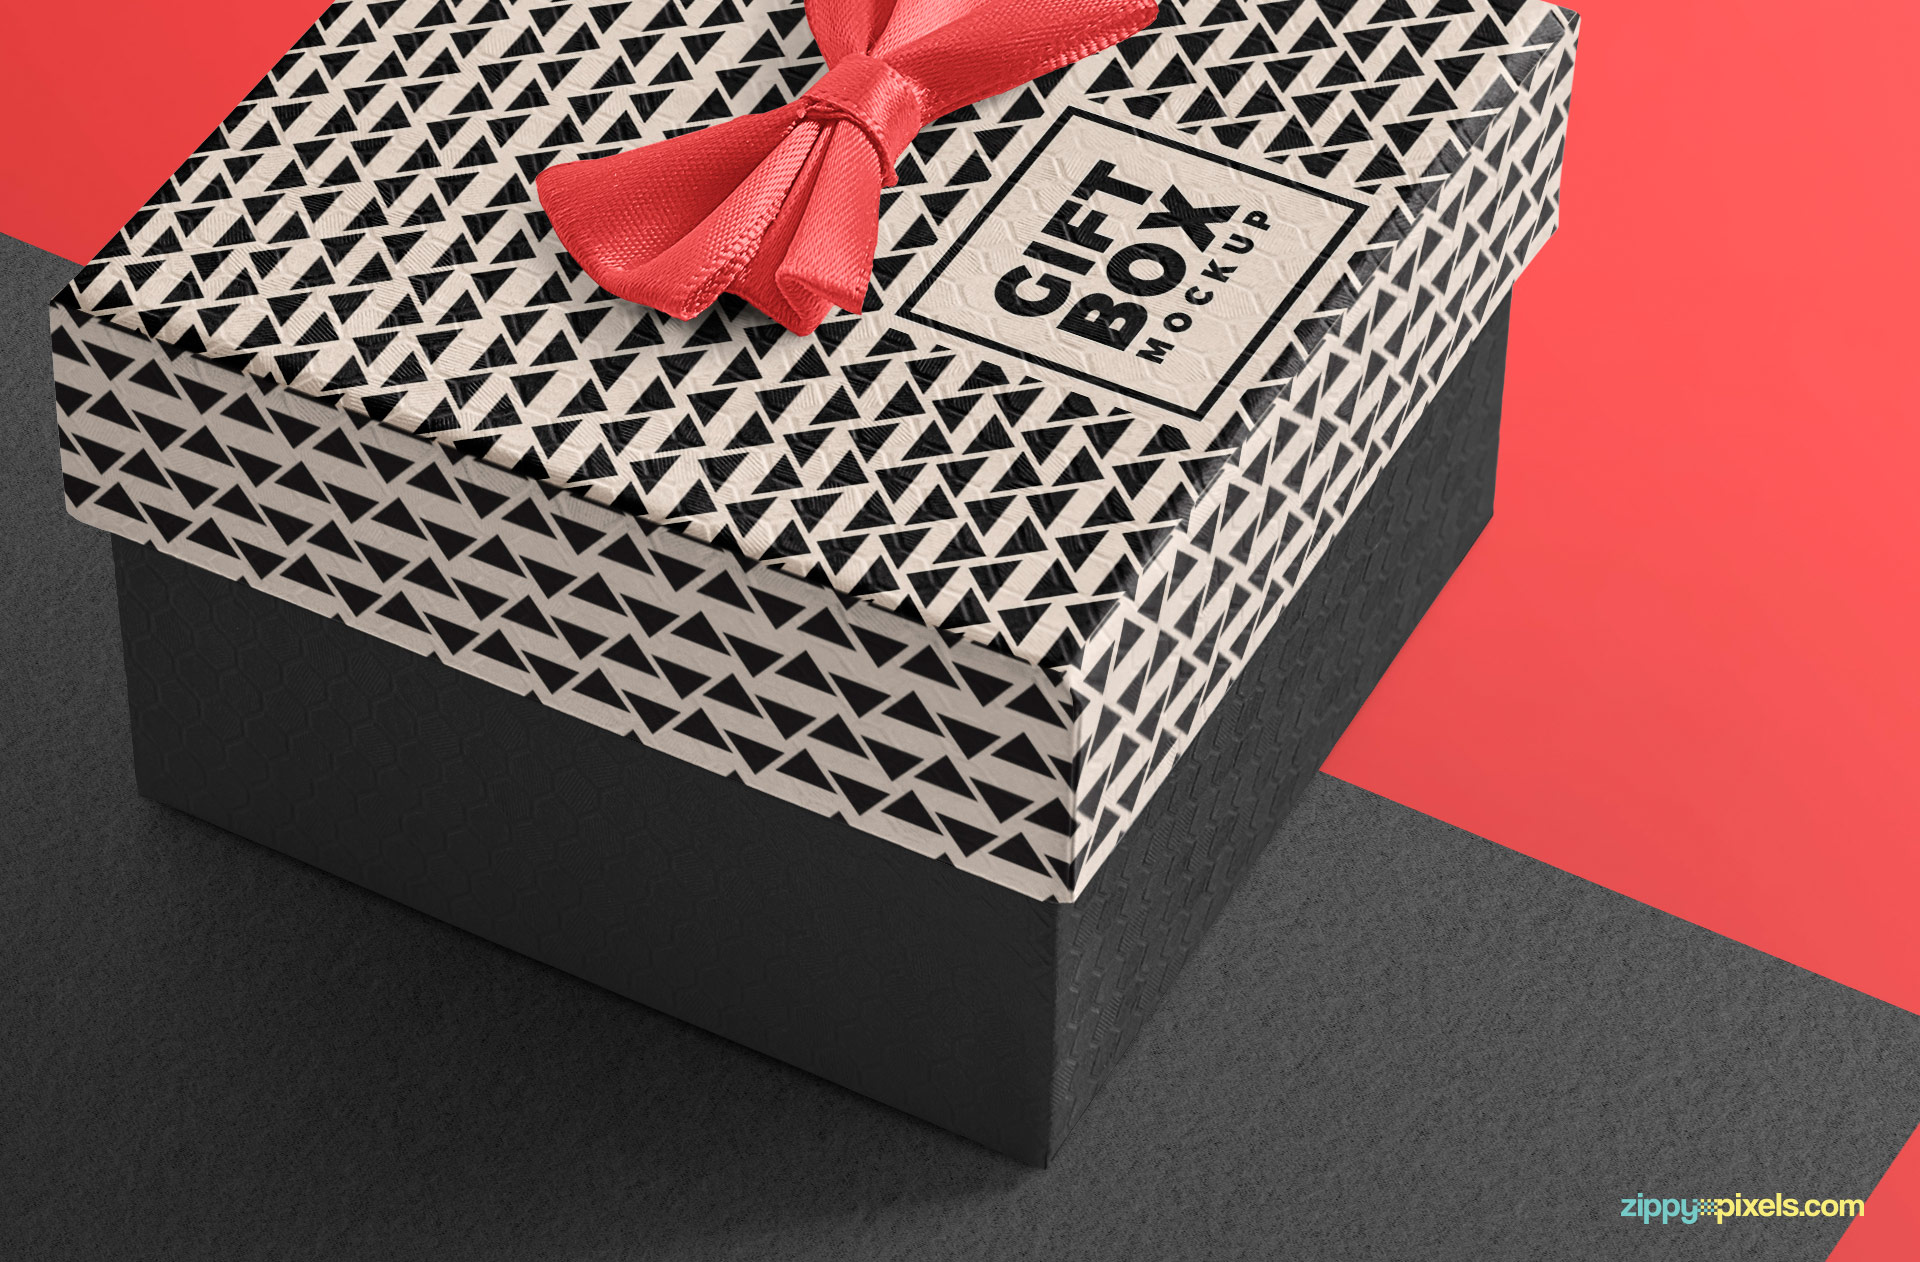 The fine texture on gift box to make your designs realistic.